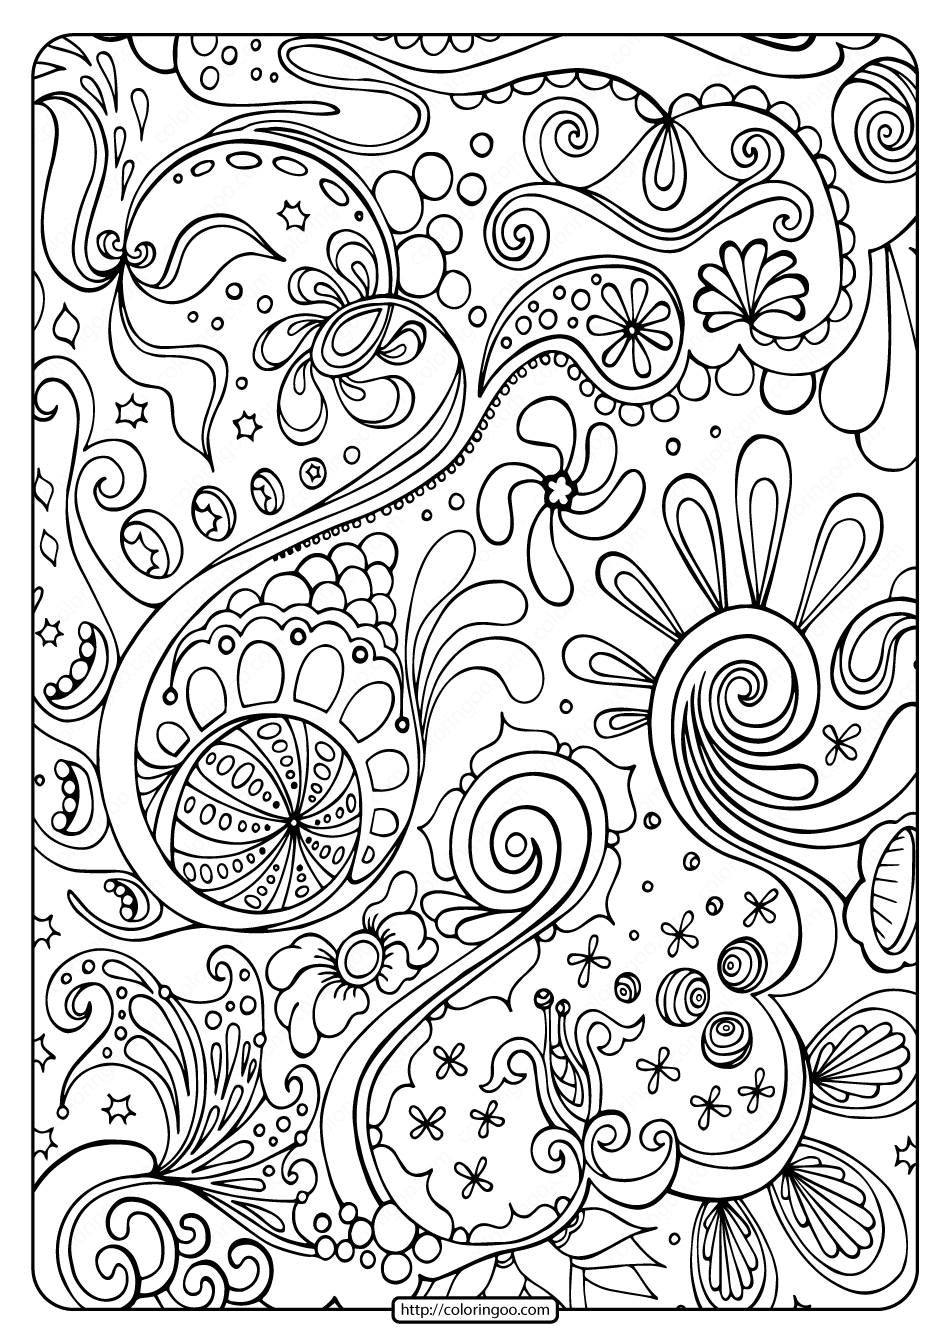 free abstract coloring pages abstract doodle coloring page free printable coloring pages abstract free coloring pages